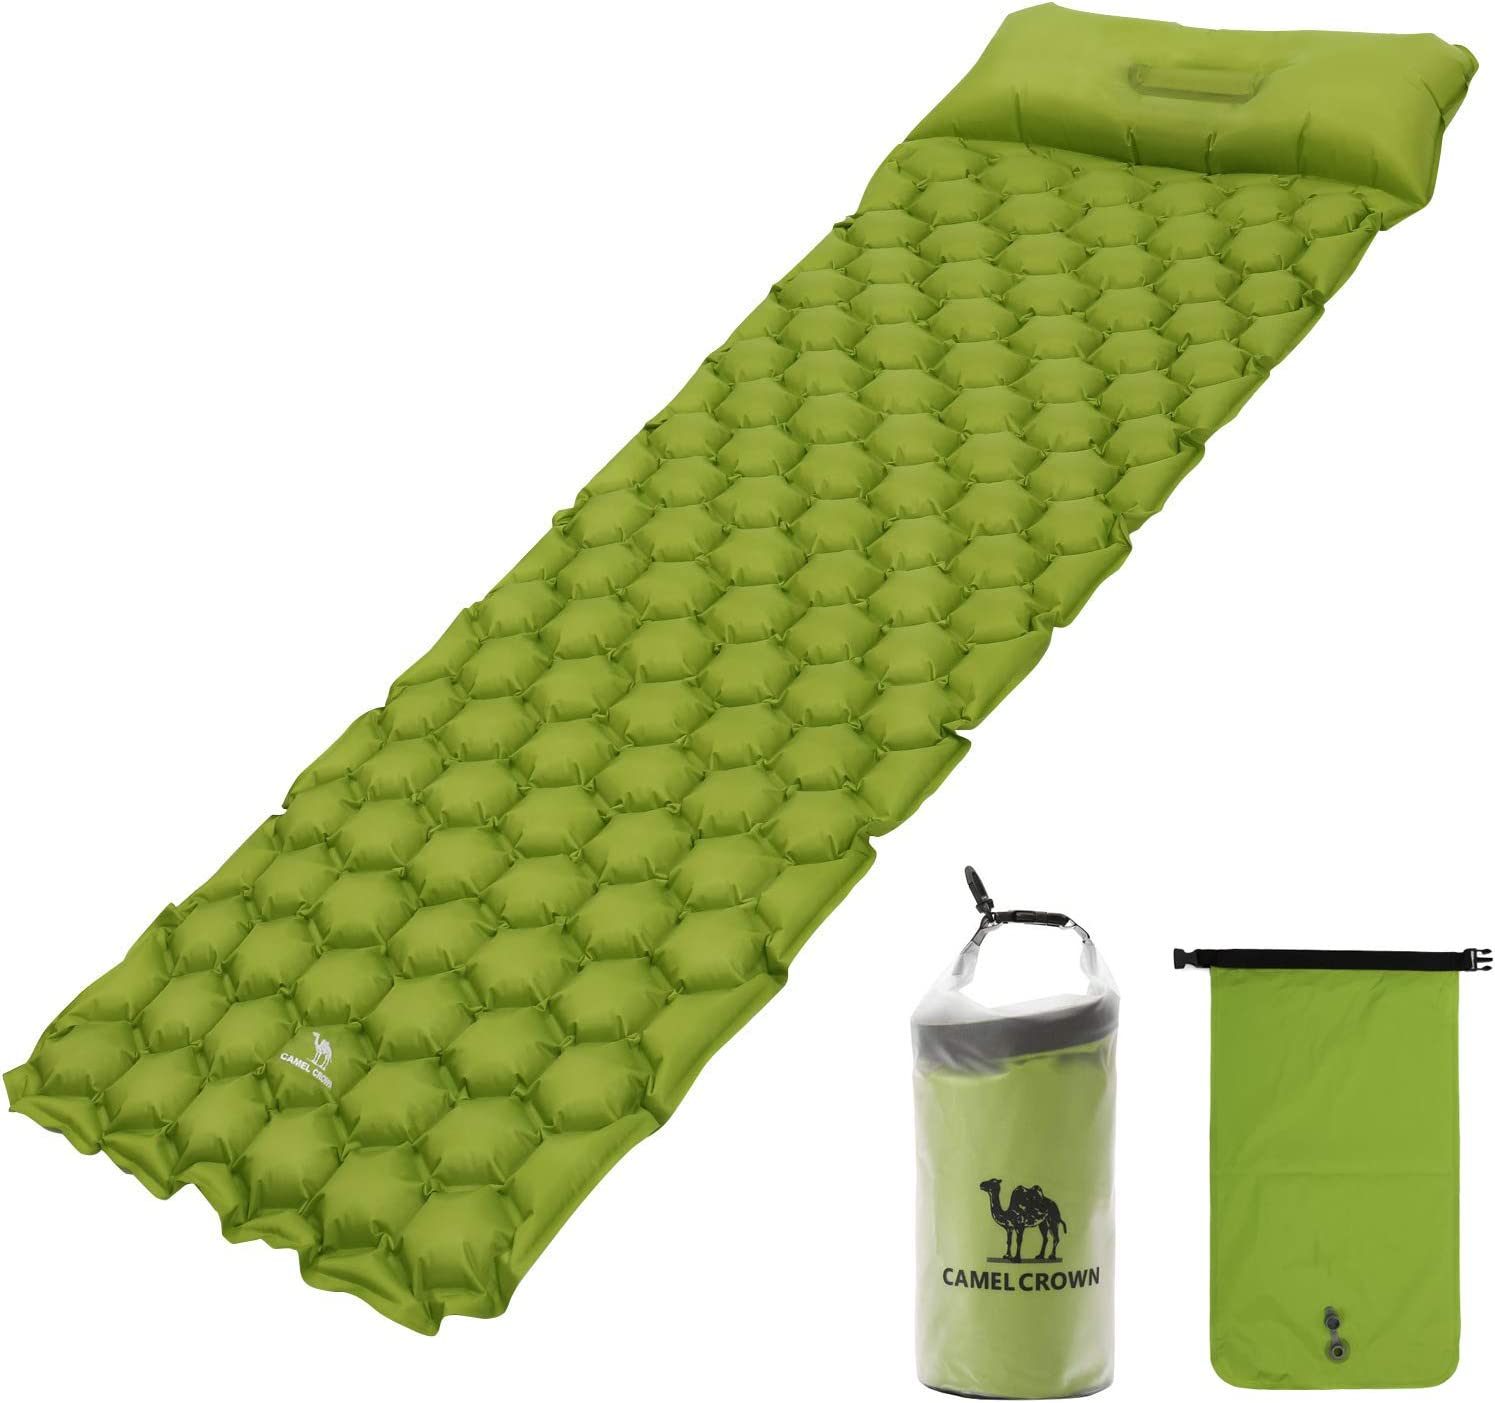 CAMEL Regular discount CROWN Camping Los Angeles Mall Sleeping Pad Upgraded Built-in with Pump Inf